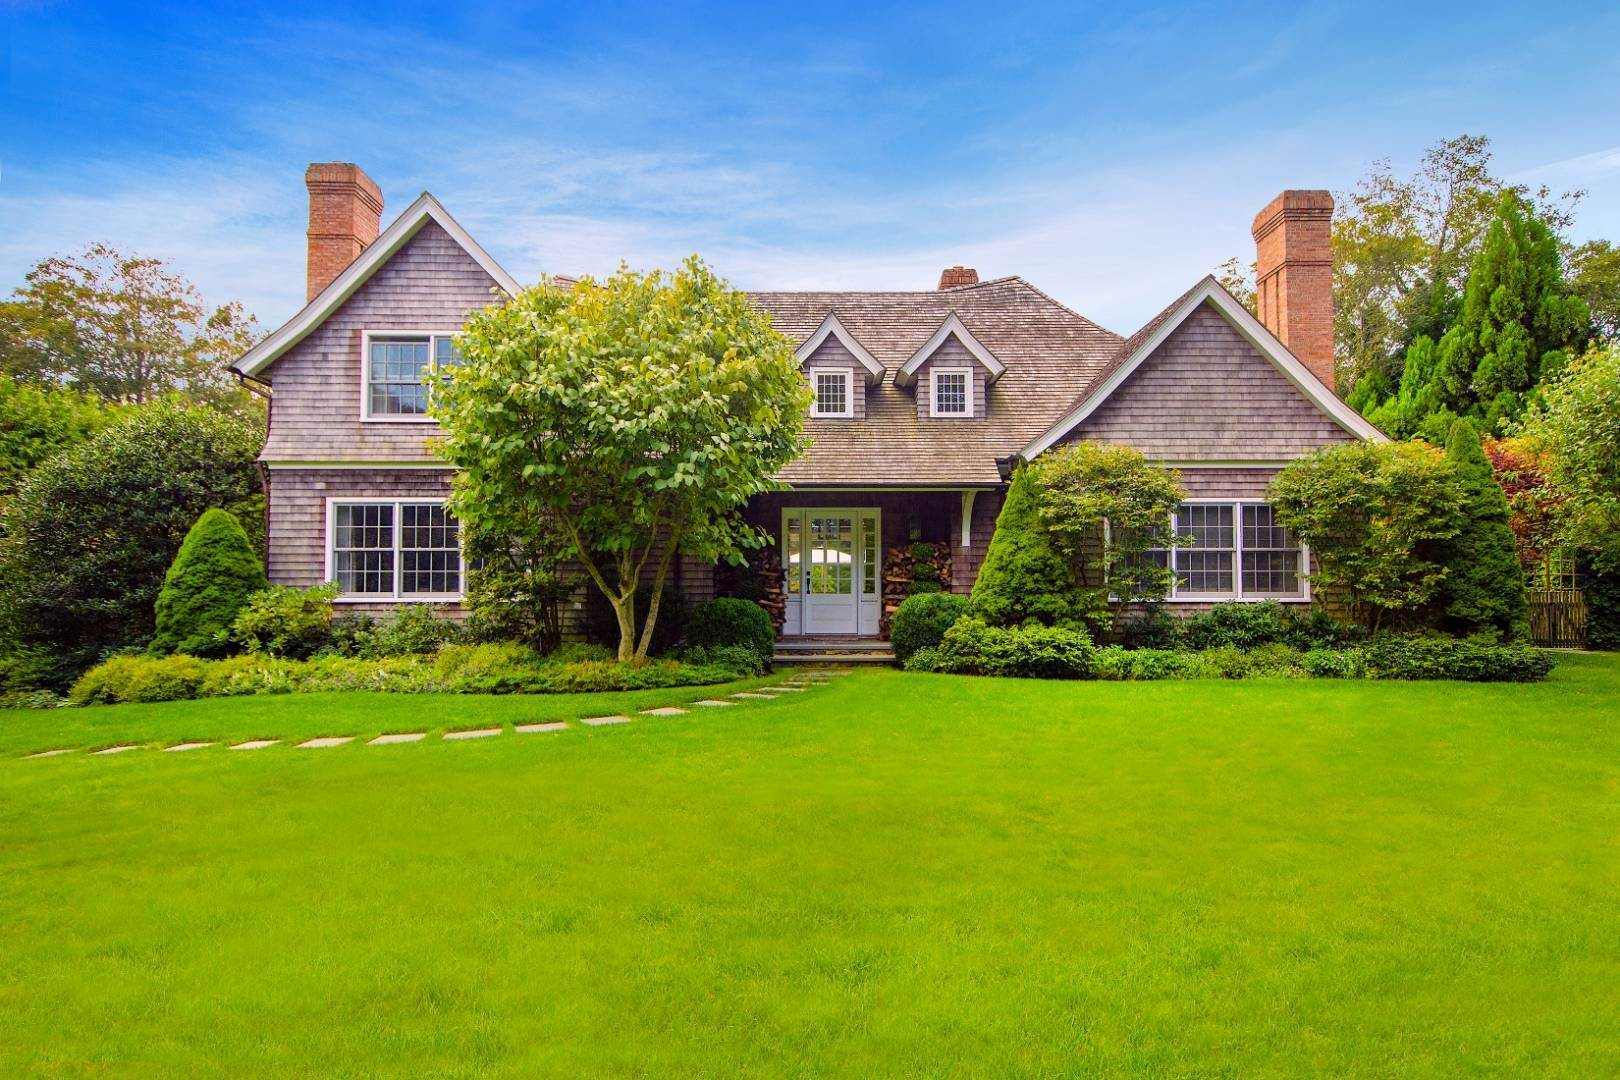 Single Family Home pour l Vente à Prime Village South Location 67 Huntting Lane, East Hampton, NY 11937